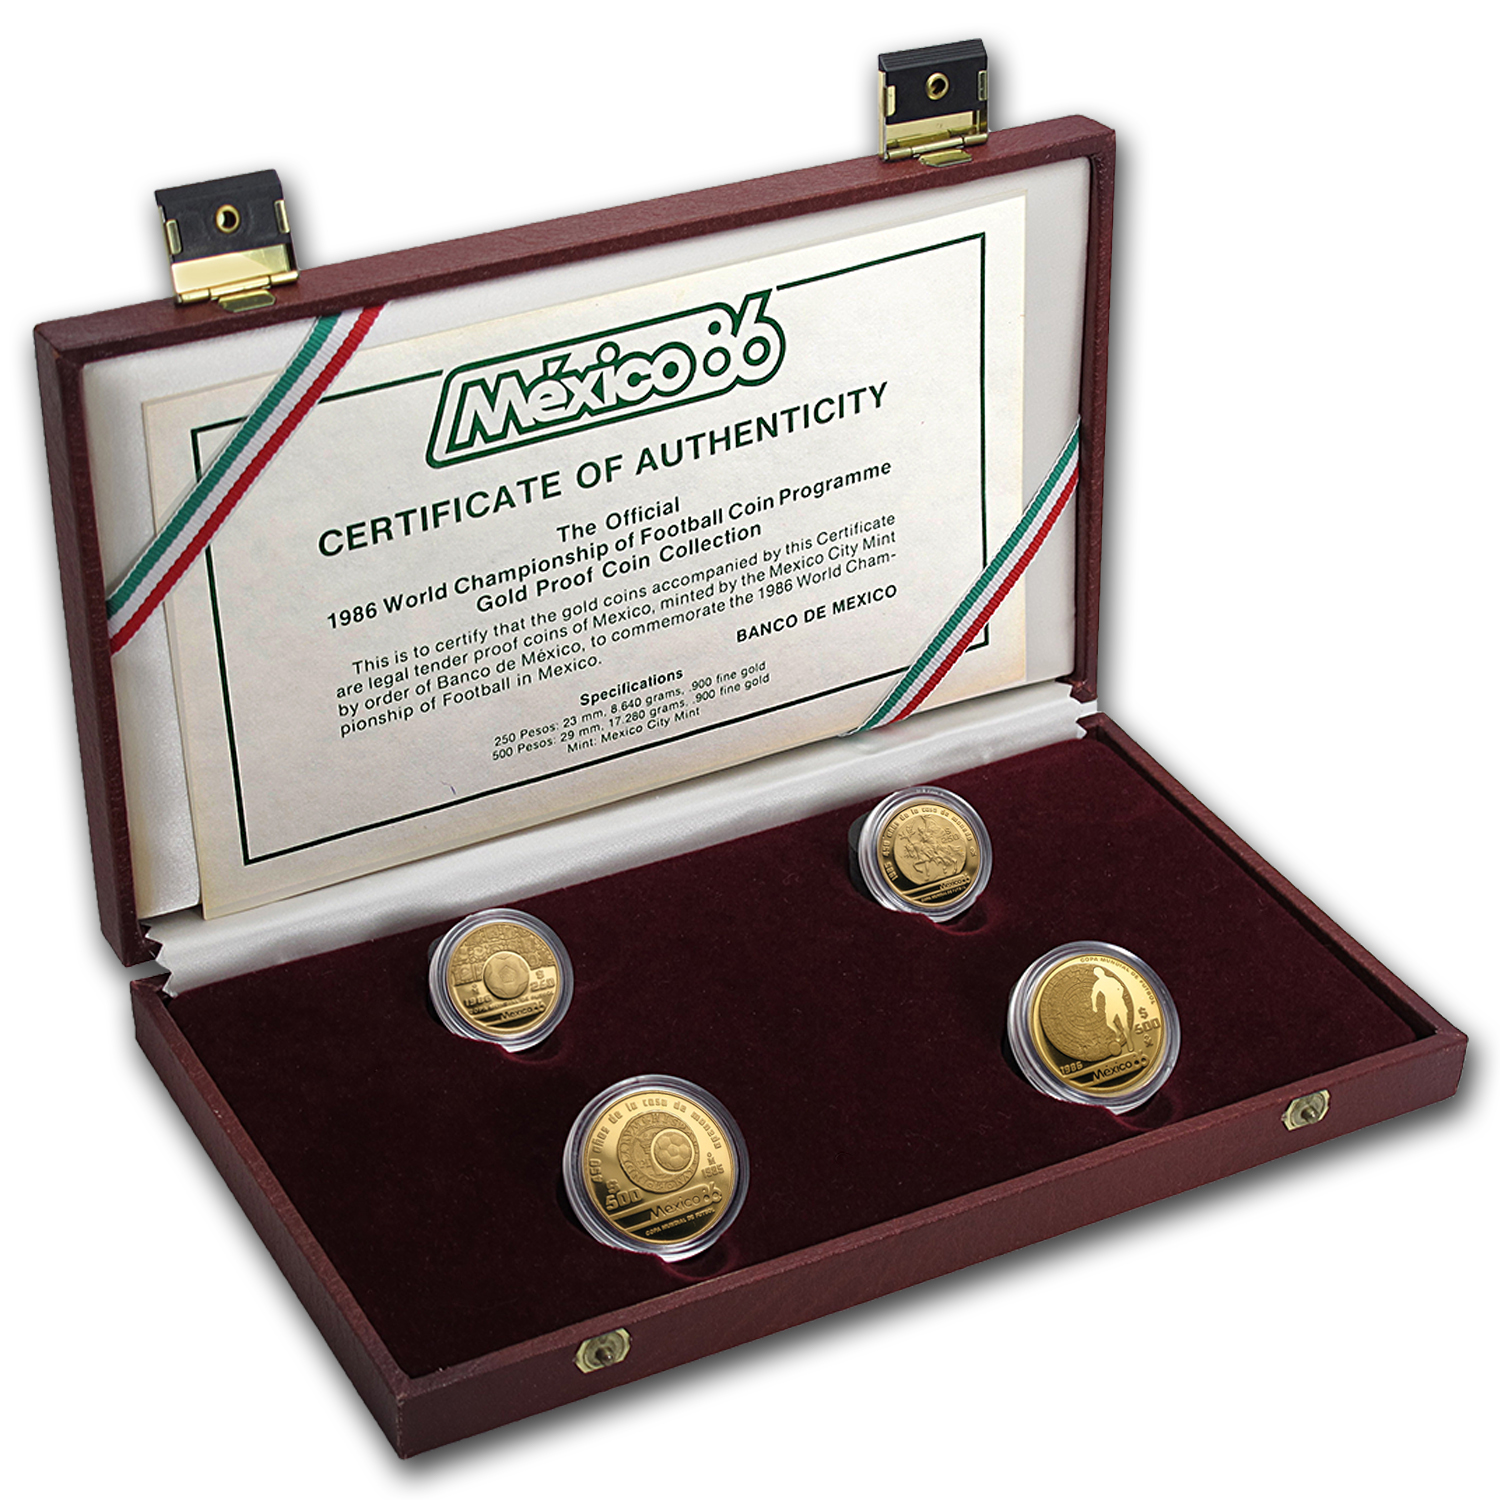 1986 Mexico 4-Coin World Cup Soccer Commemorative Proof Set